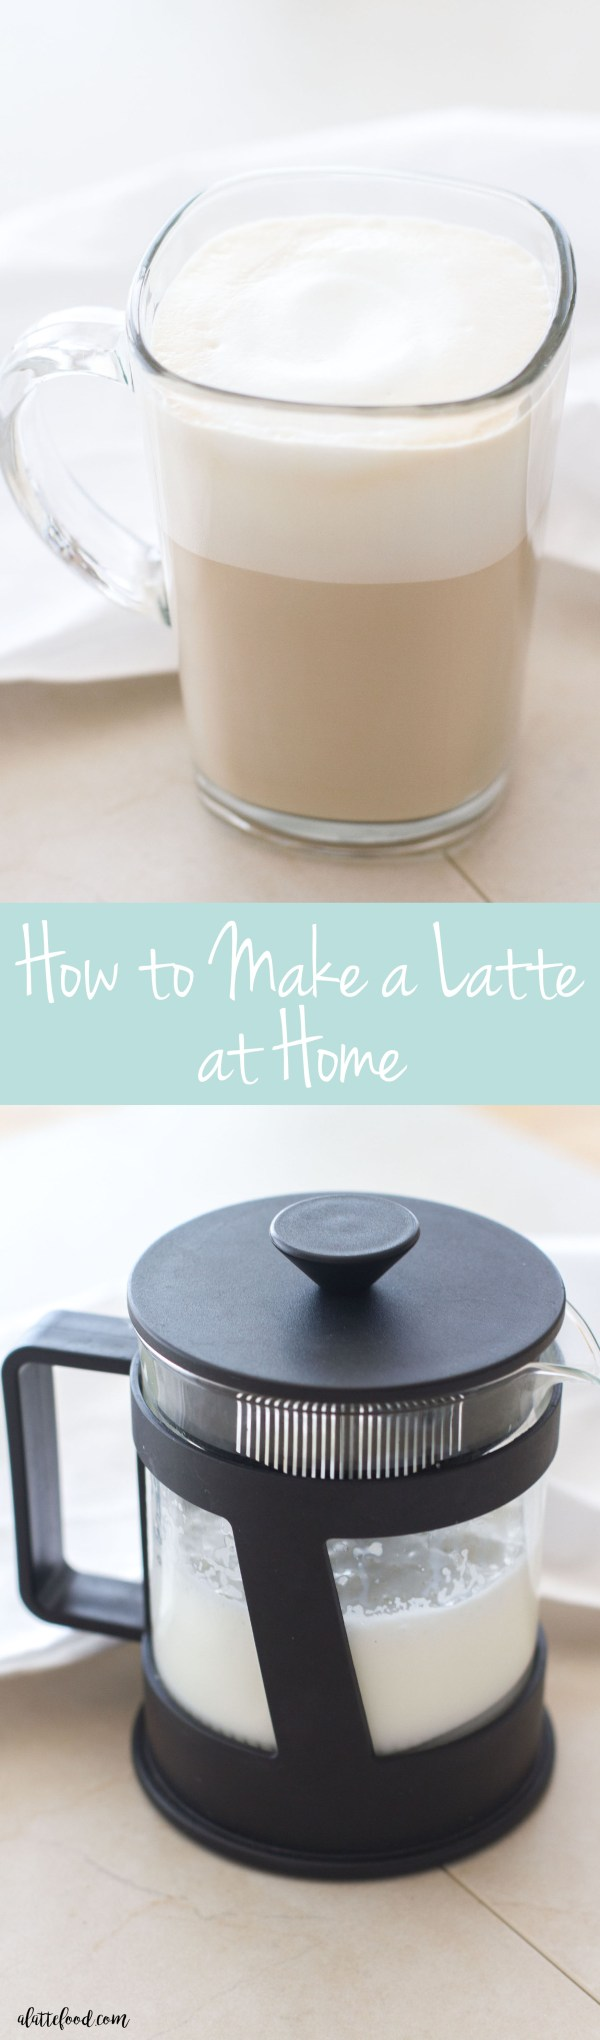 Learn how to make your favorite coffee shop drinks at home with one simple trick to make frothed milk! (No latte machine required!)